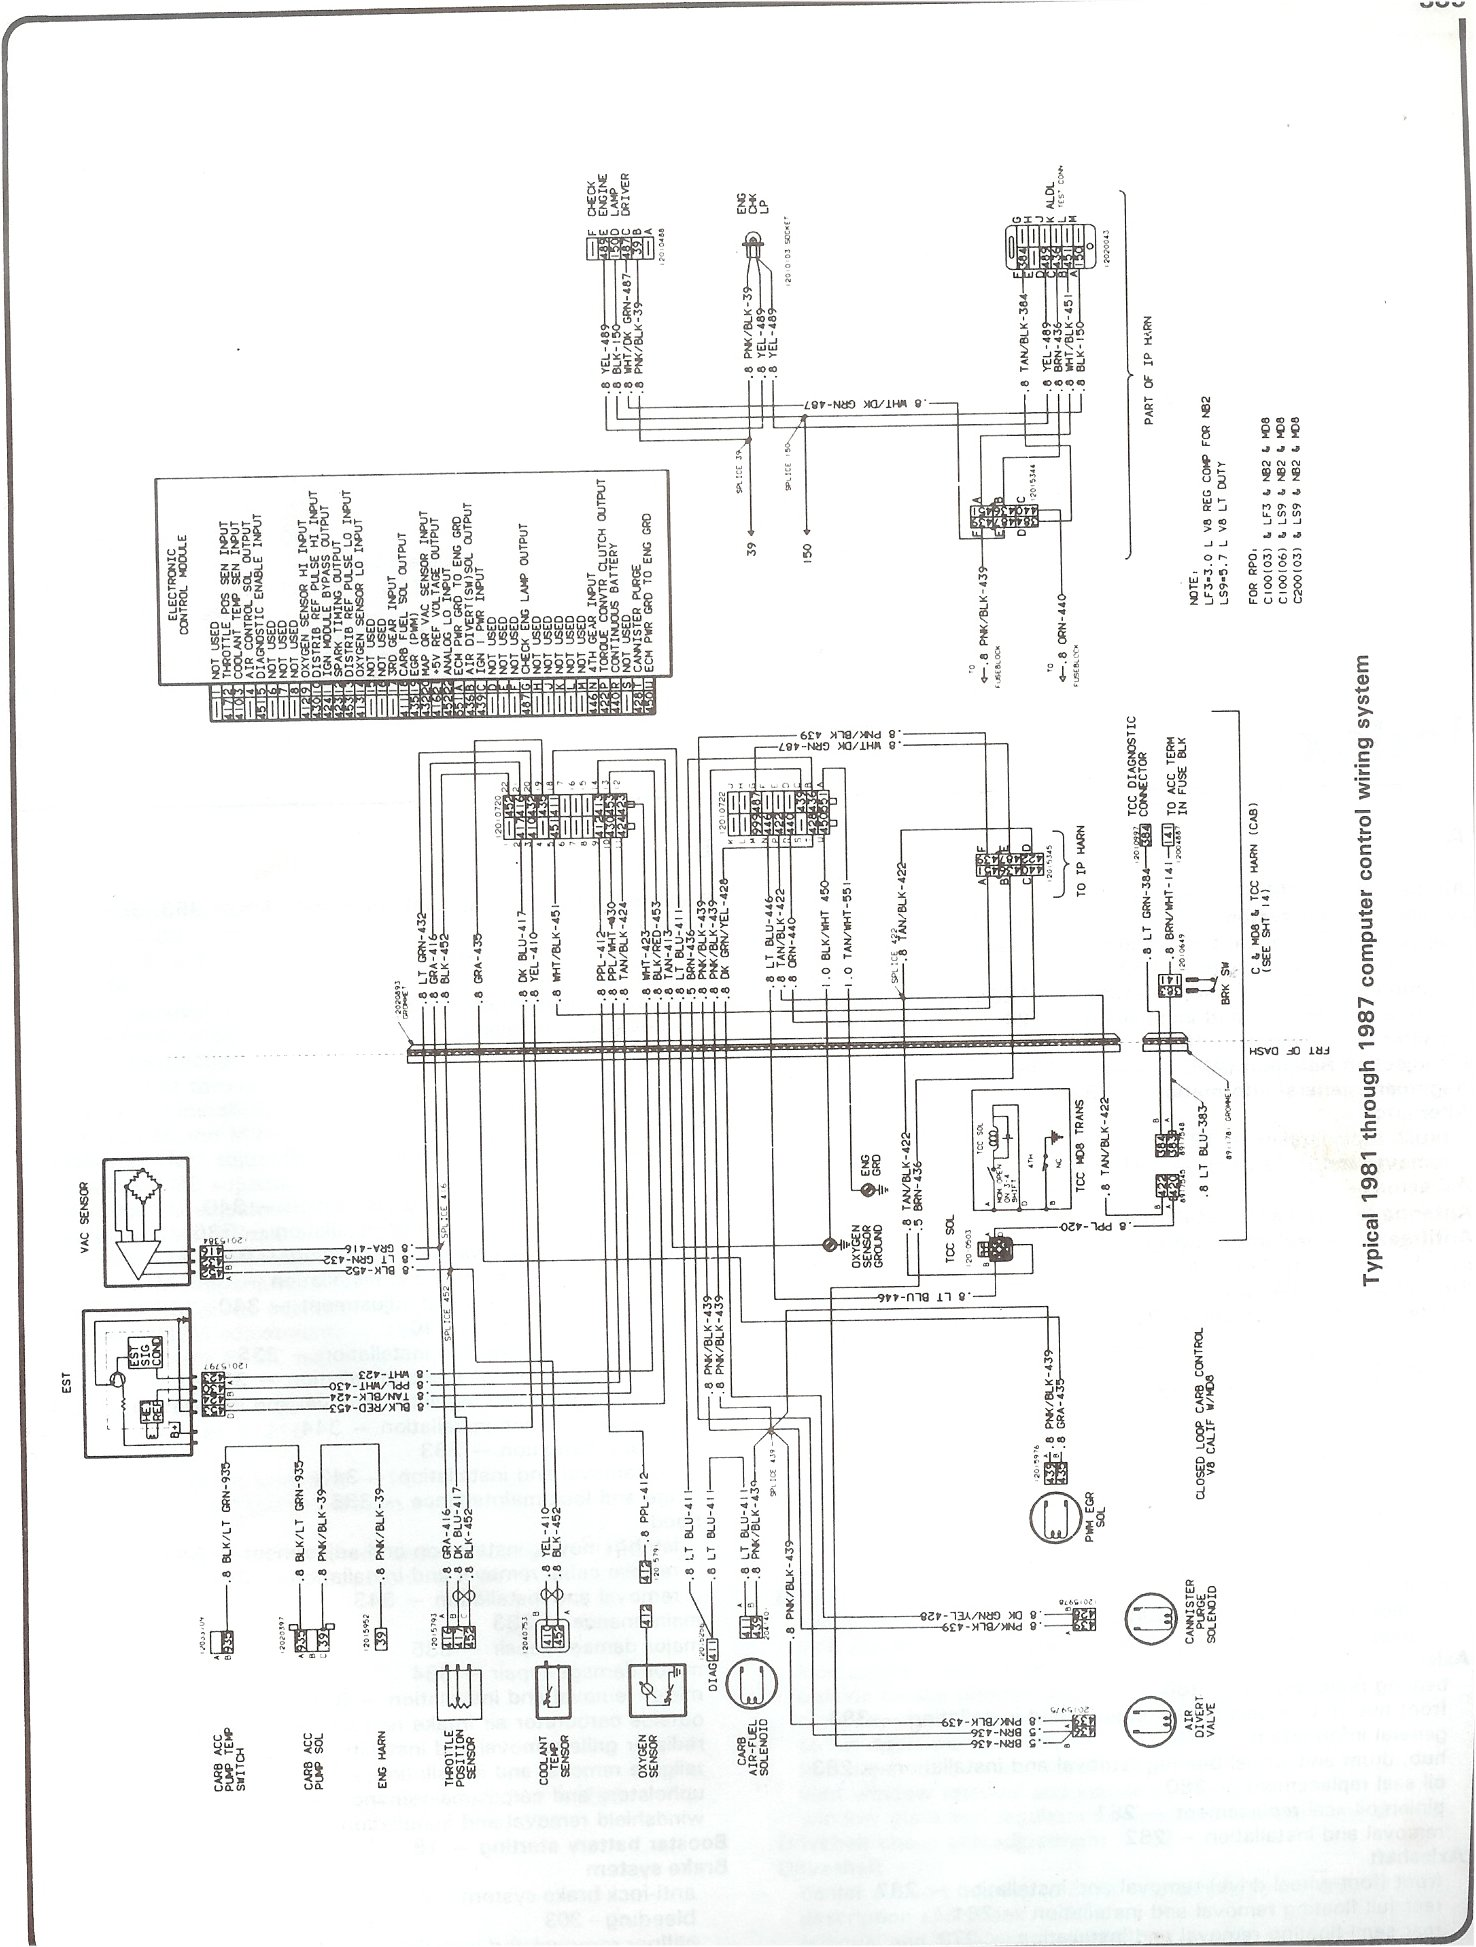 81 87_computer_control_wiring complete 73 87 wiring diagrams Basic Engine Wiring Diagram Chevy at suagrazia.org